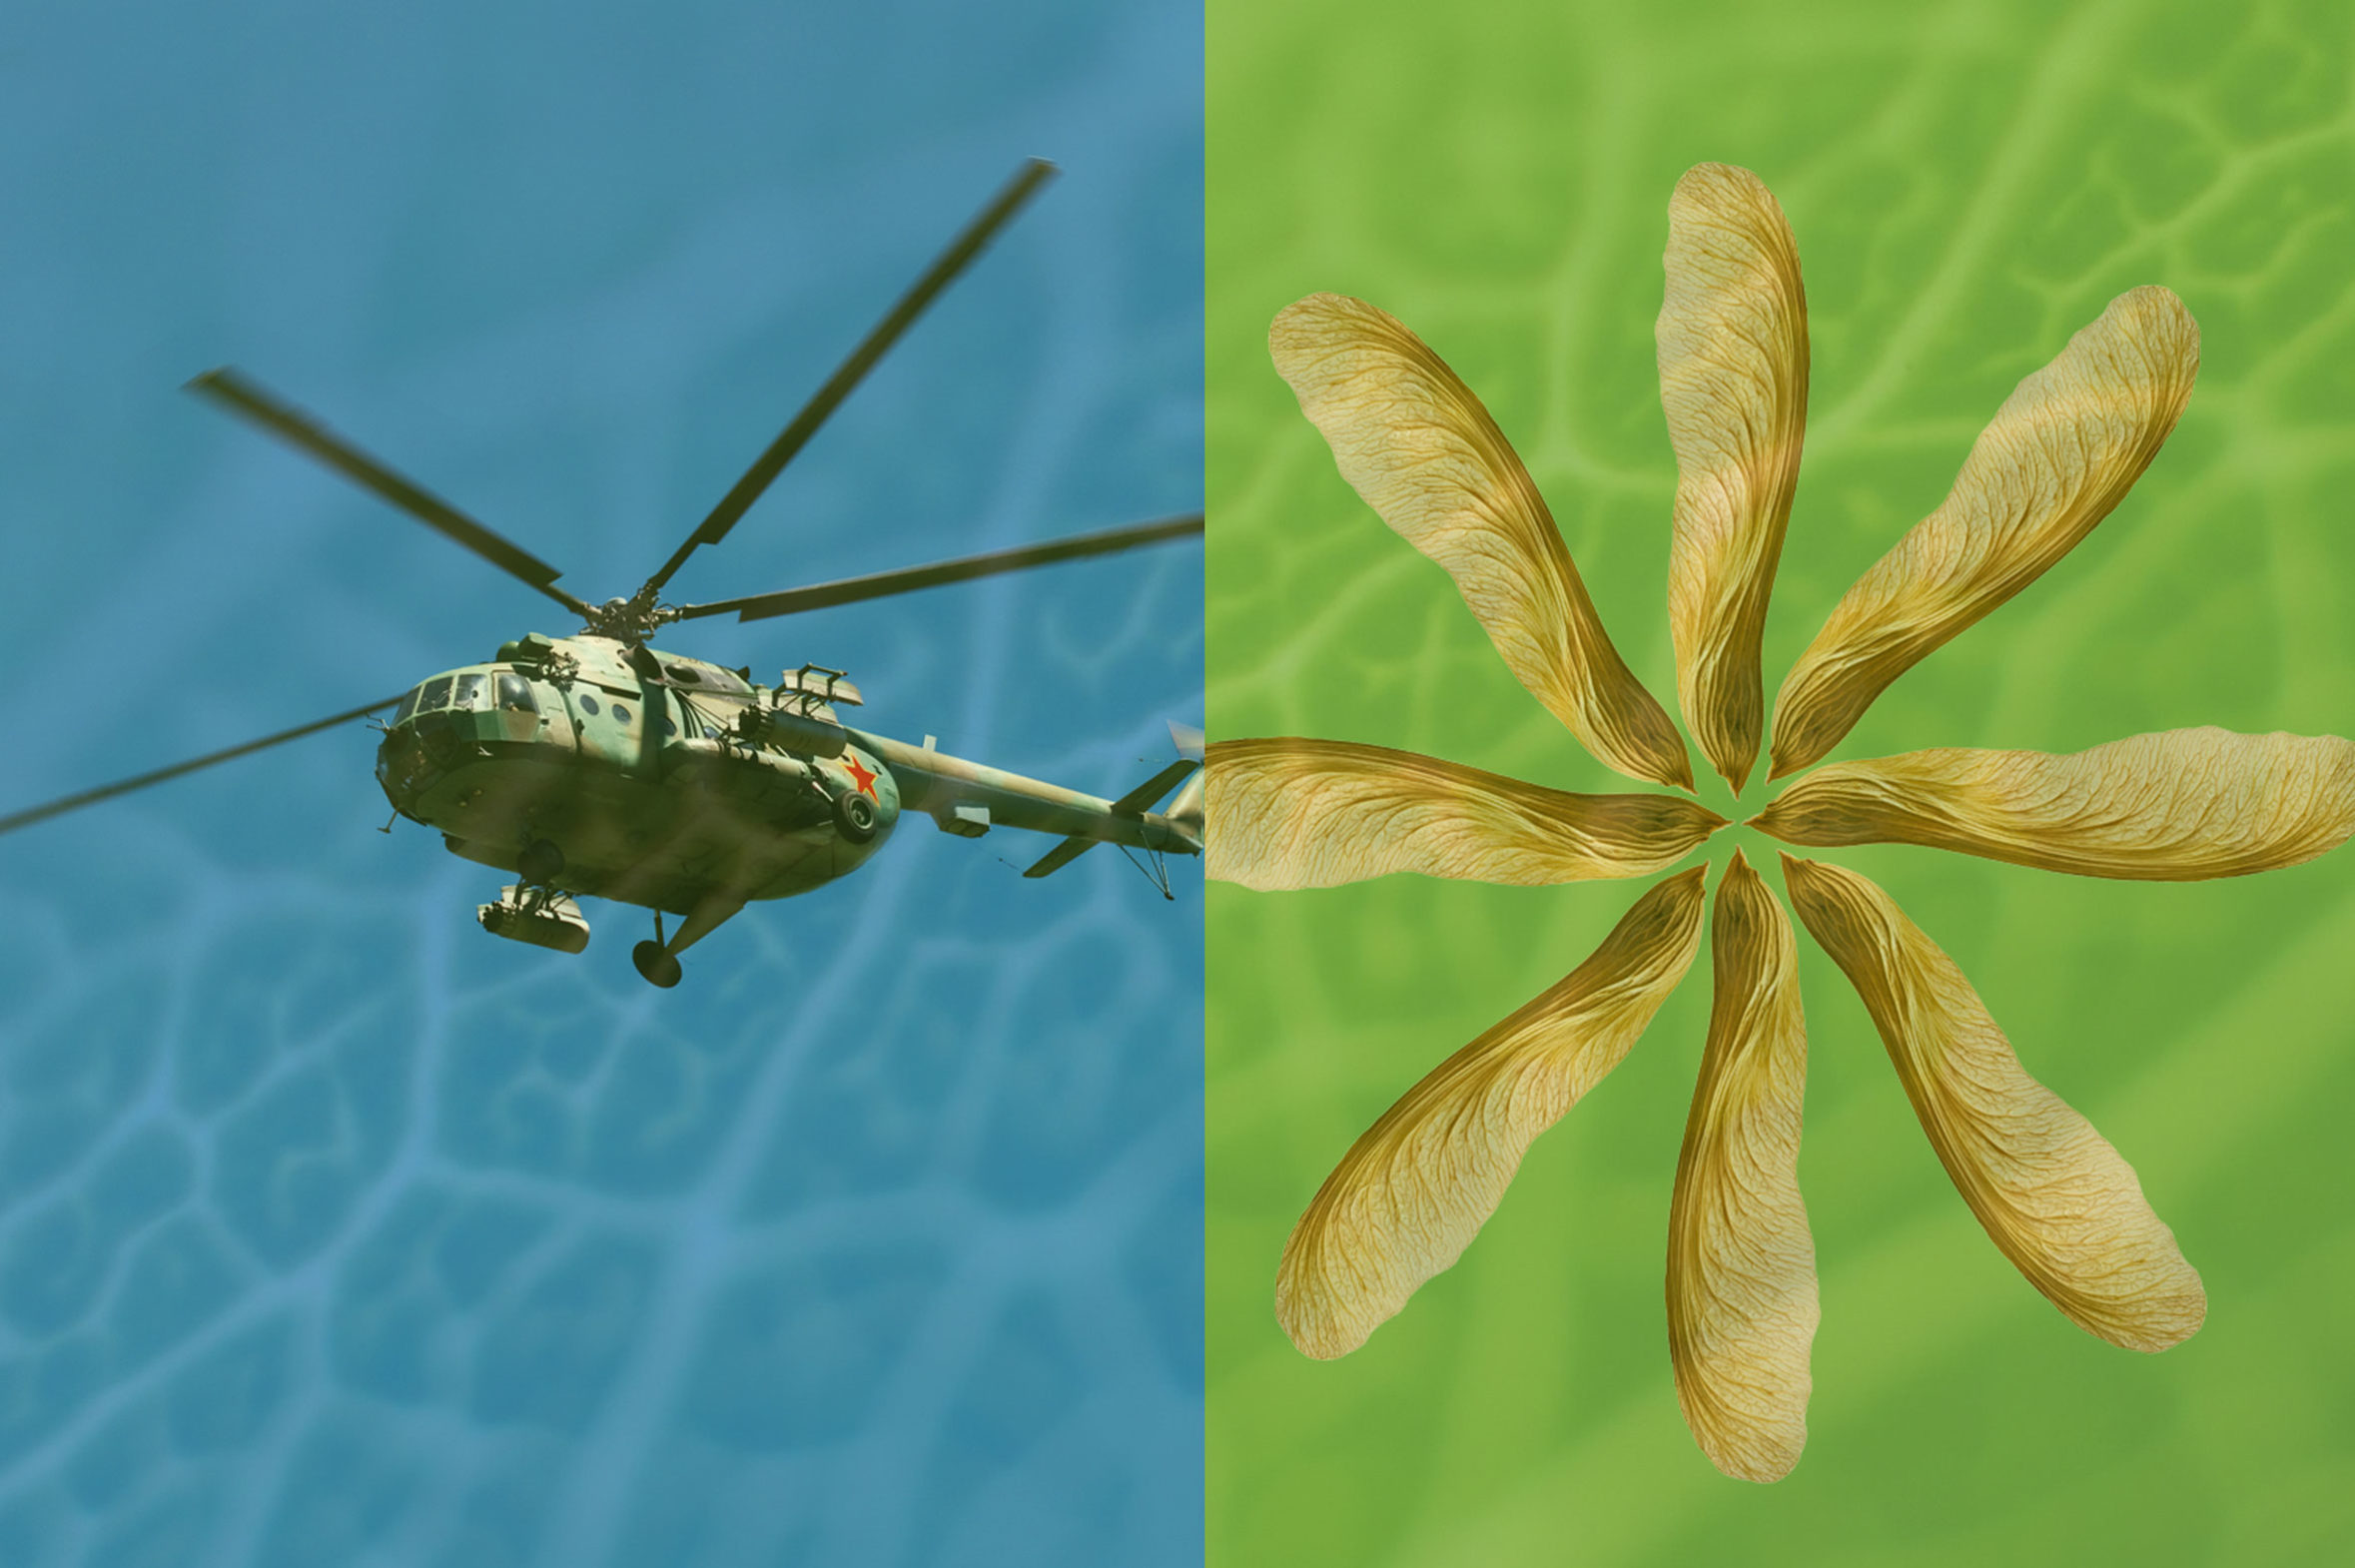 helicopter wings inspired by oak tree seeds